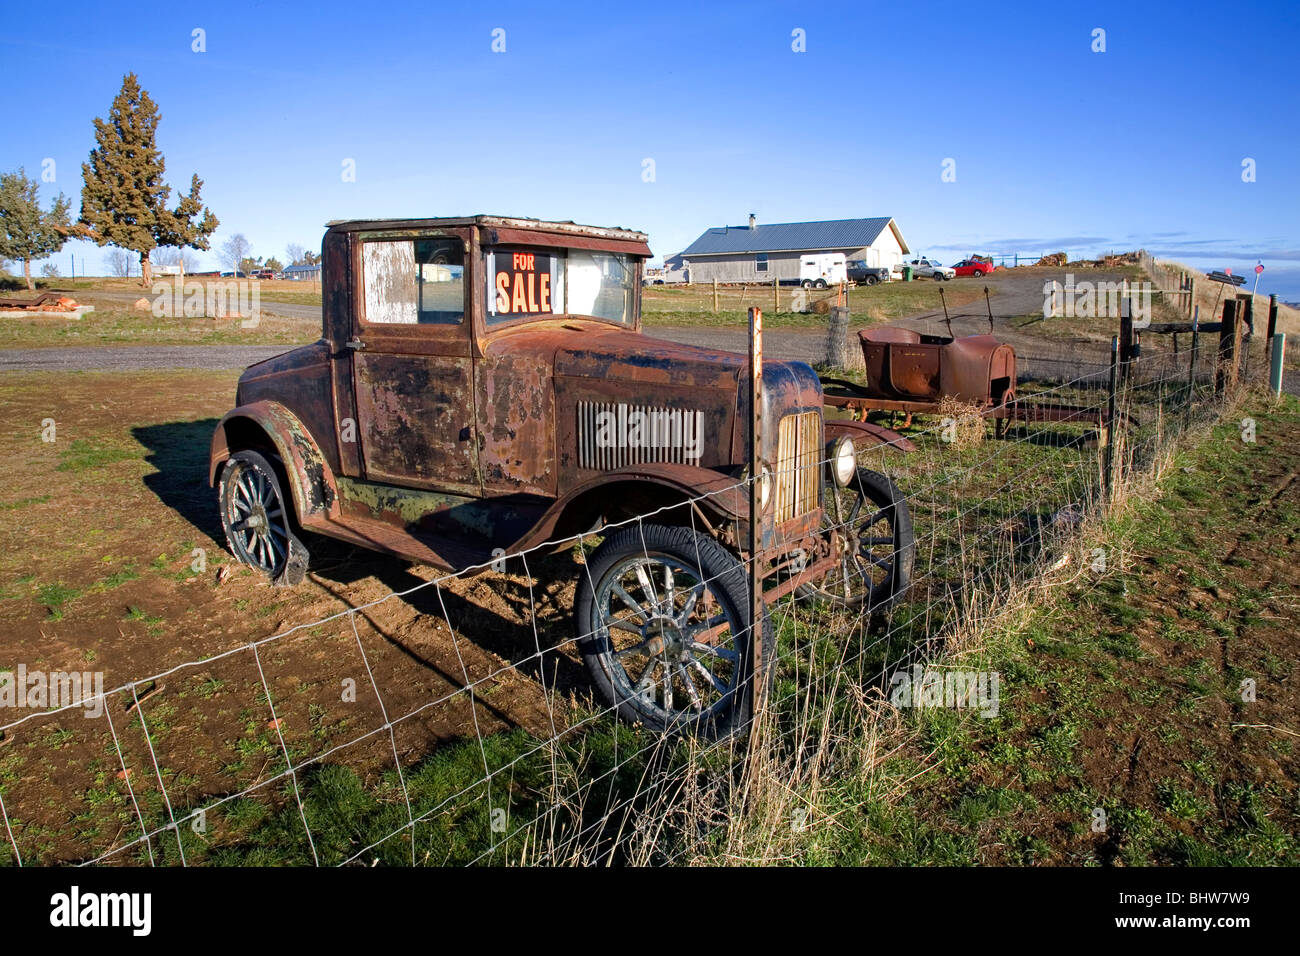 A For Sale sign on a rusty antique classic old car in a field in ...